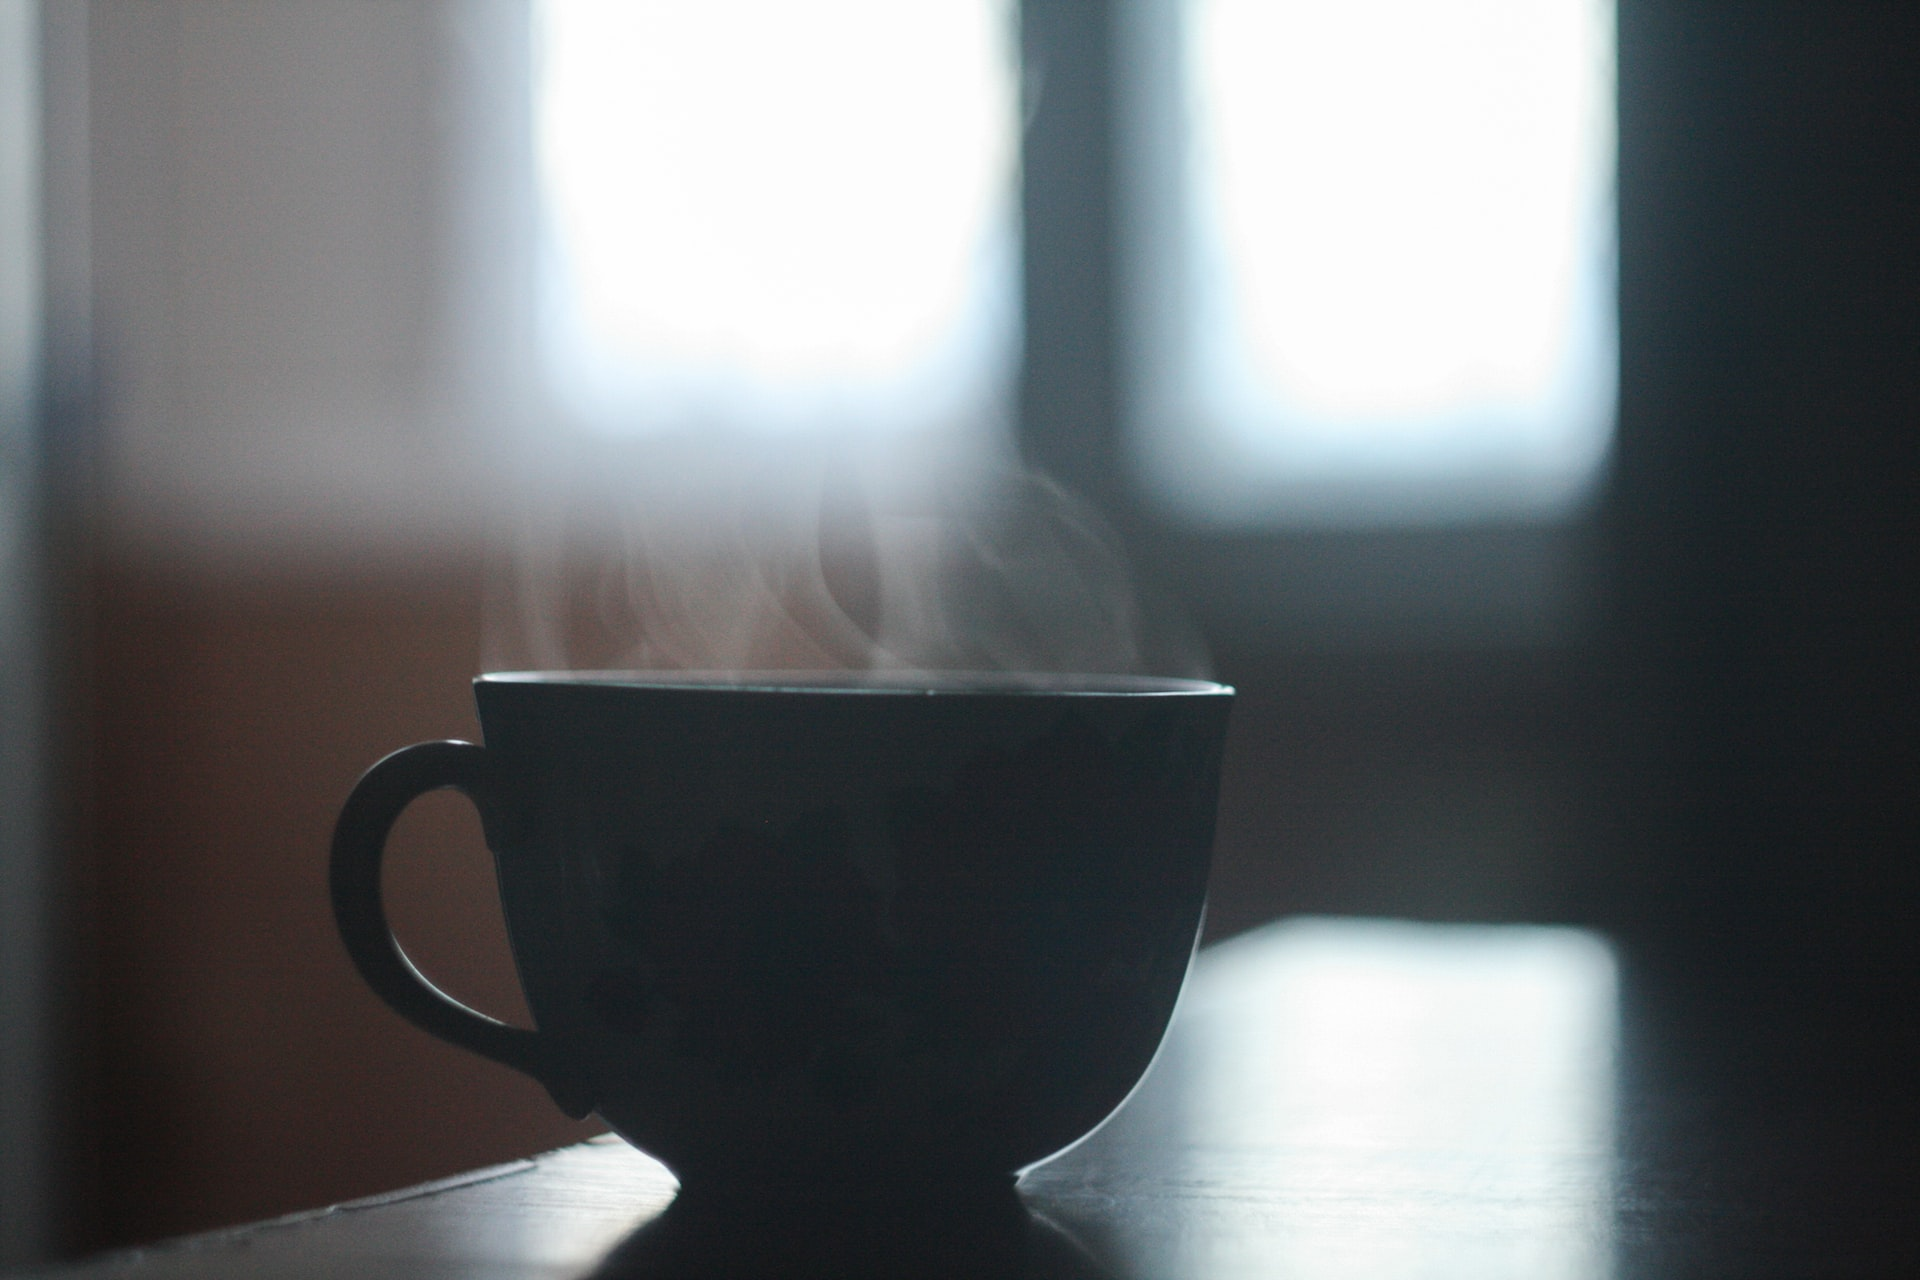 A dark image of a mug with steam rising in the foreground, brought to significance by the beaming light behind in the background.